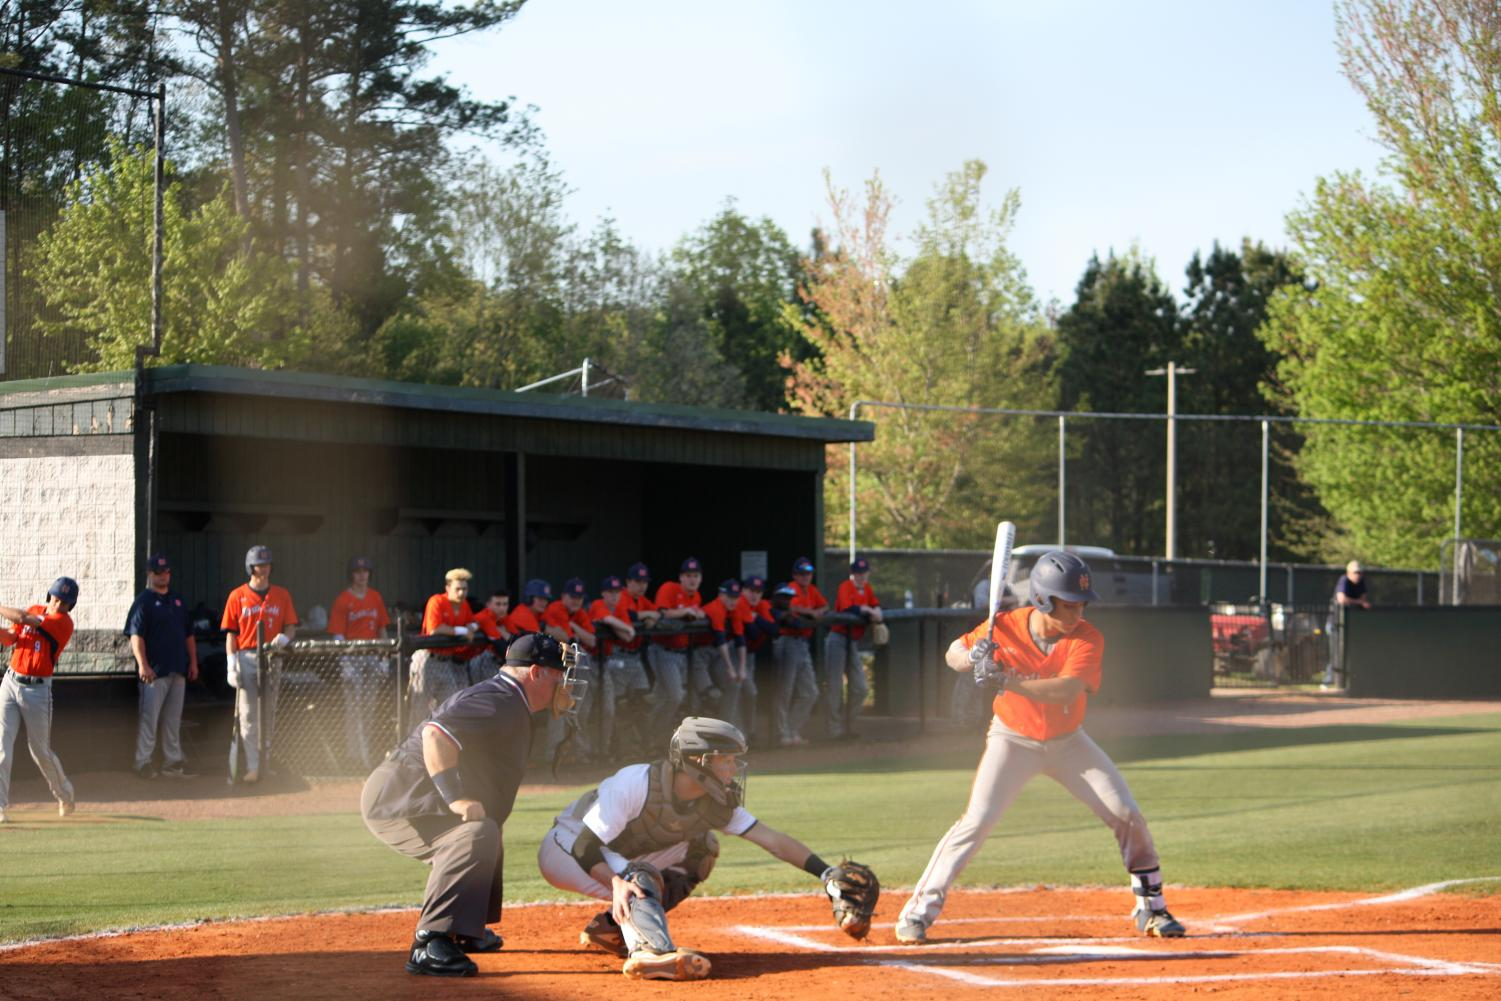 """The NC Warriors faced off against rival Kennesaw Mountain Mustangs the week of April 8, 2019. The rival teams played competitively and passionately, NC winning one of the three games and demonstrating a valiant fight in the others.  """"Kennesaw Mountain series is always hard-fought and emotional like a rivalry series should be,"""" Head Coach Tom Callahan said."""